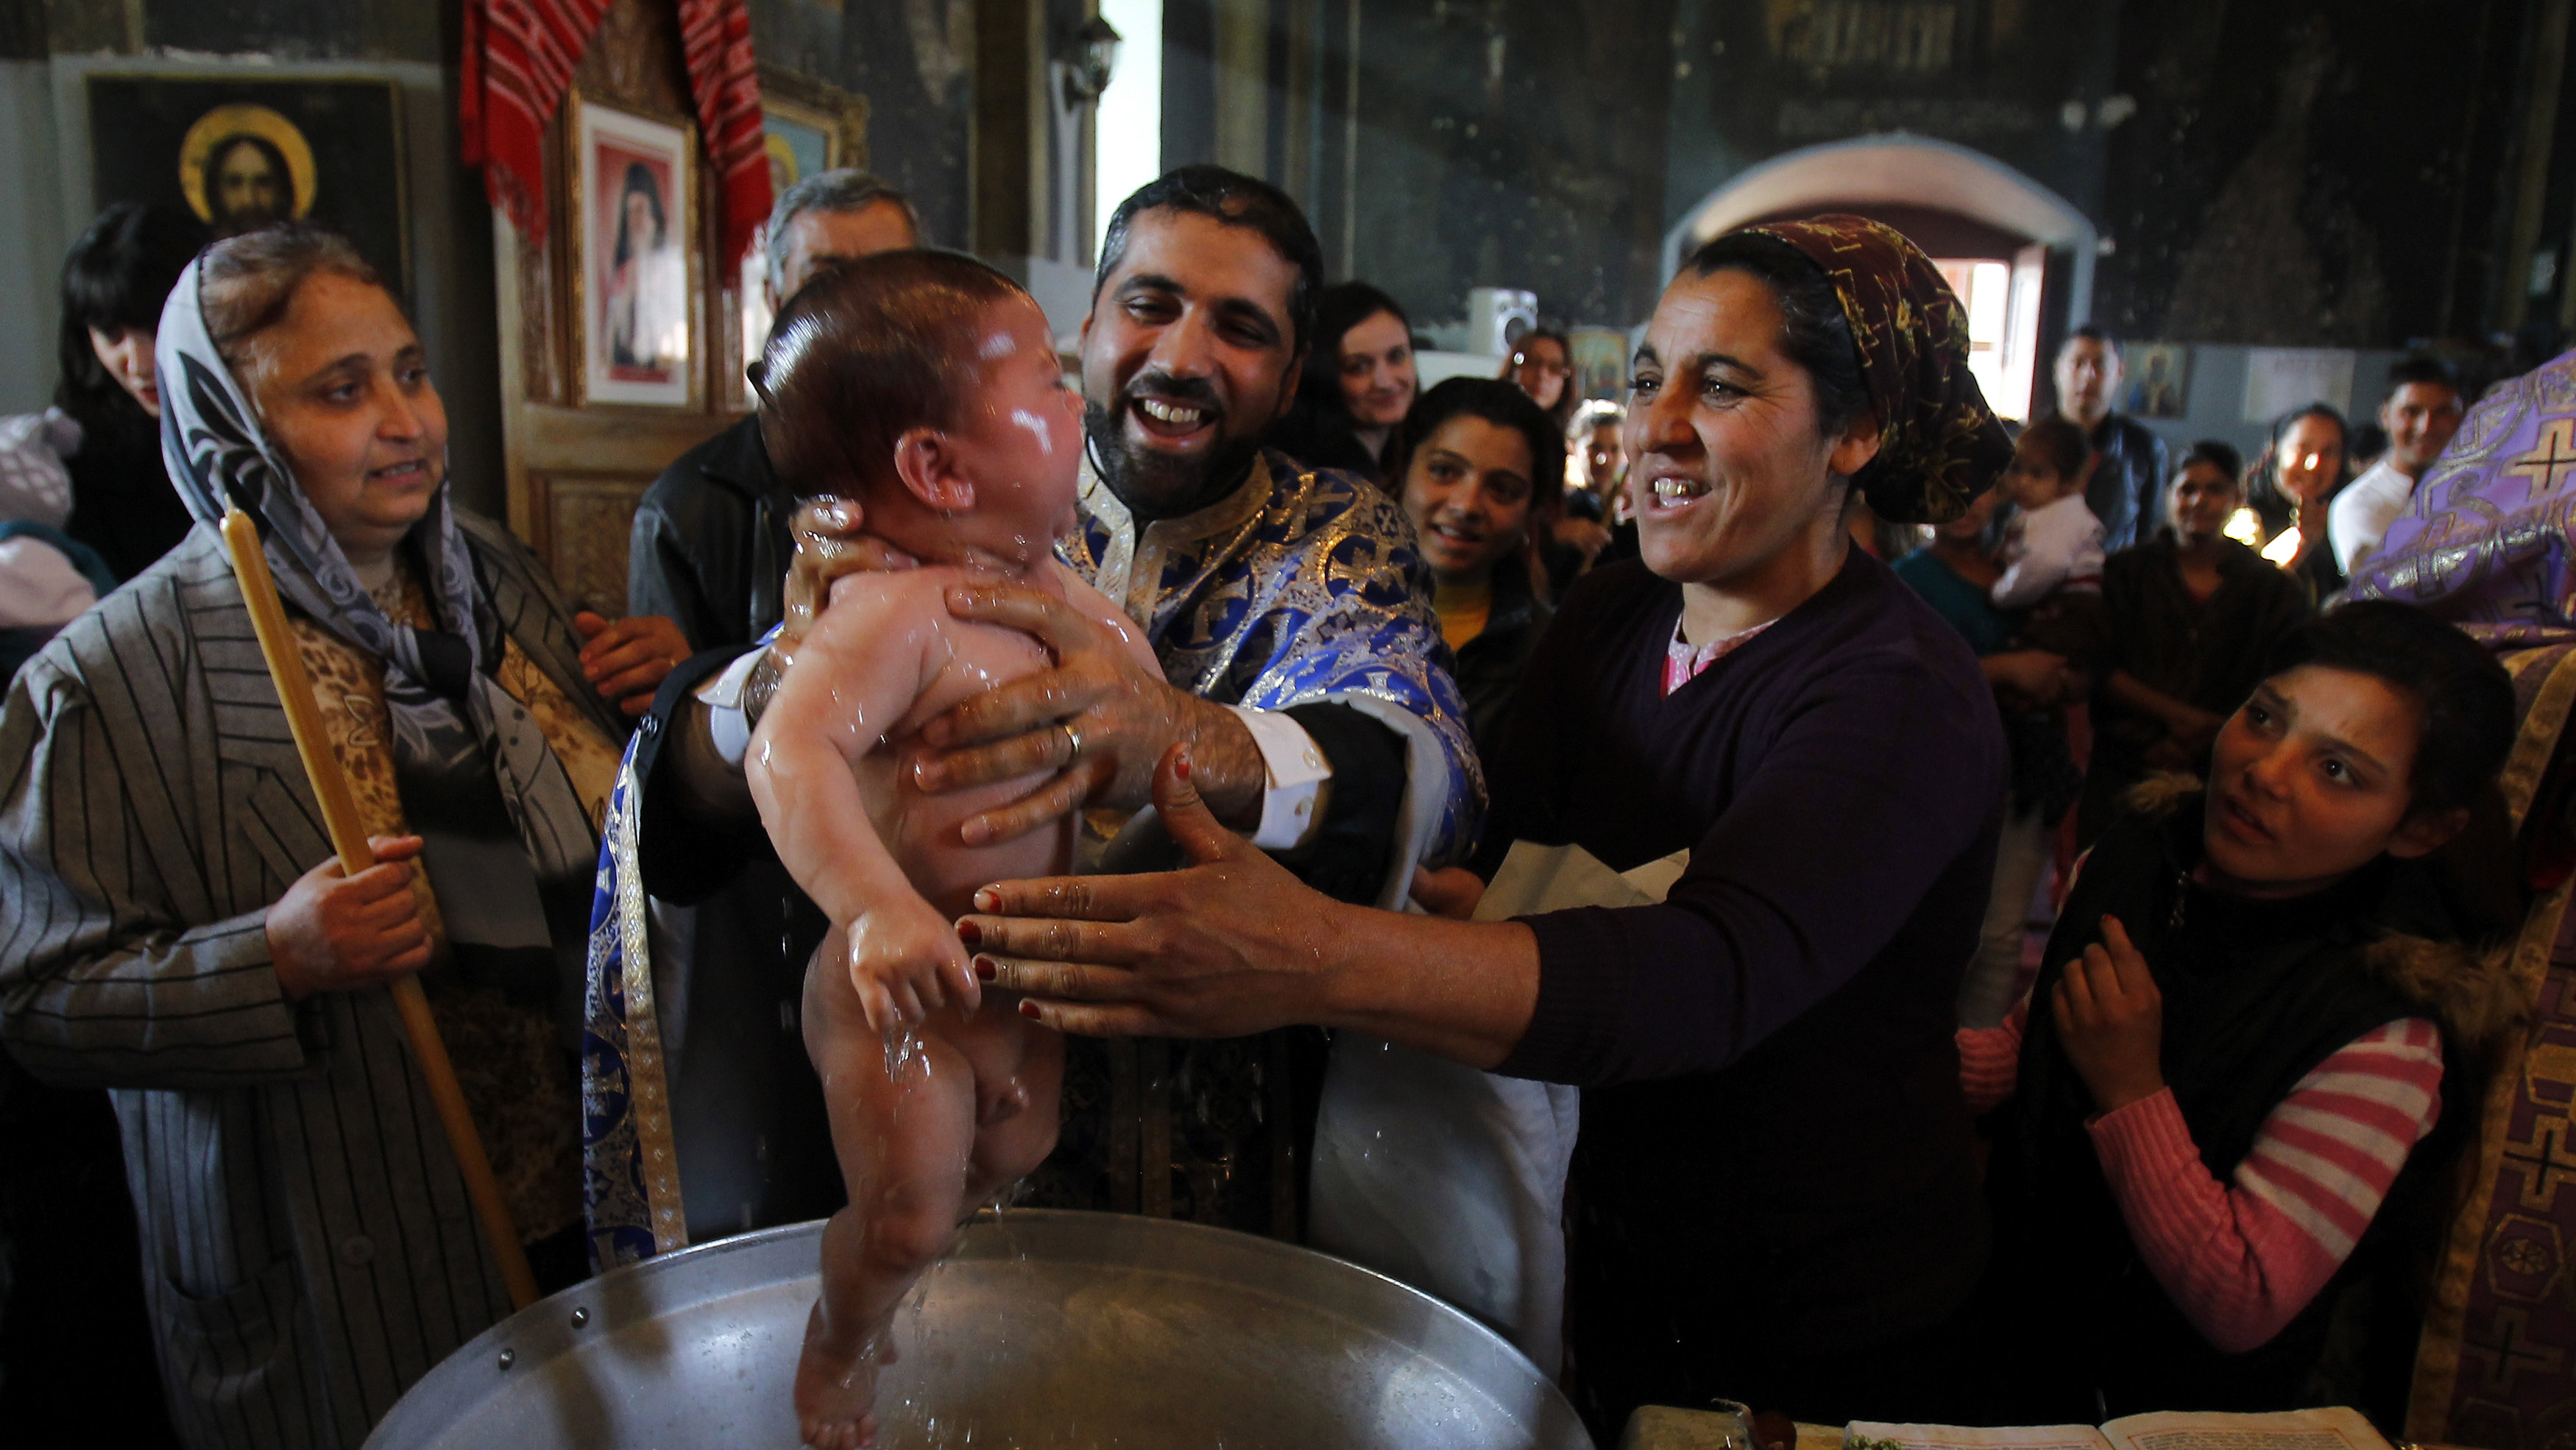 Priest Nicolae Ganga (C), a member of Romania's Roma ethnic minority, baptizes a child during a very rare mass Orthodox baptism ceremony at a church in the Bora neighbourhood in Slobozia, 130 km (81 miles) east of Bucharest November 29, 2012. About 40 Roma ethnic people, aged between one and 57 years, were baptized into the Orthodox Christian faith with Romanians serving as godparents during a very rare mass ceremony in an attempt to strengthen their community ties with the Romanian majority. The Roma people make up the biggest ethnic minority in the European Union, most of them from countries like Romania, Bulgaria and the Czech Republic. There are an estimated 10 million across Europe and one in five lives in Romania.